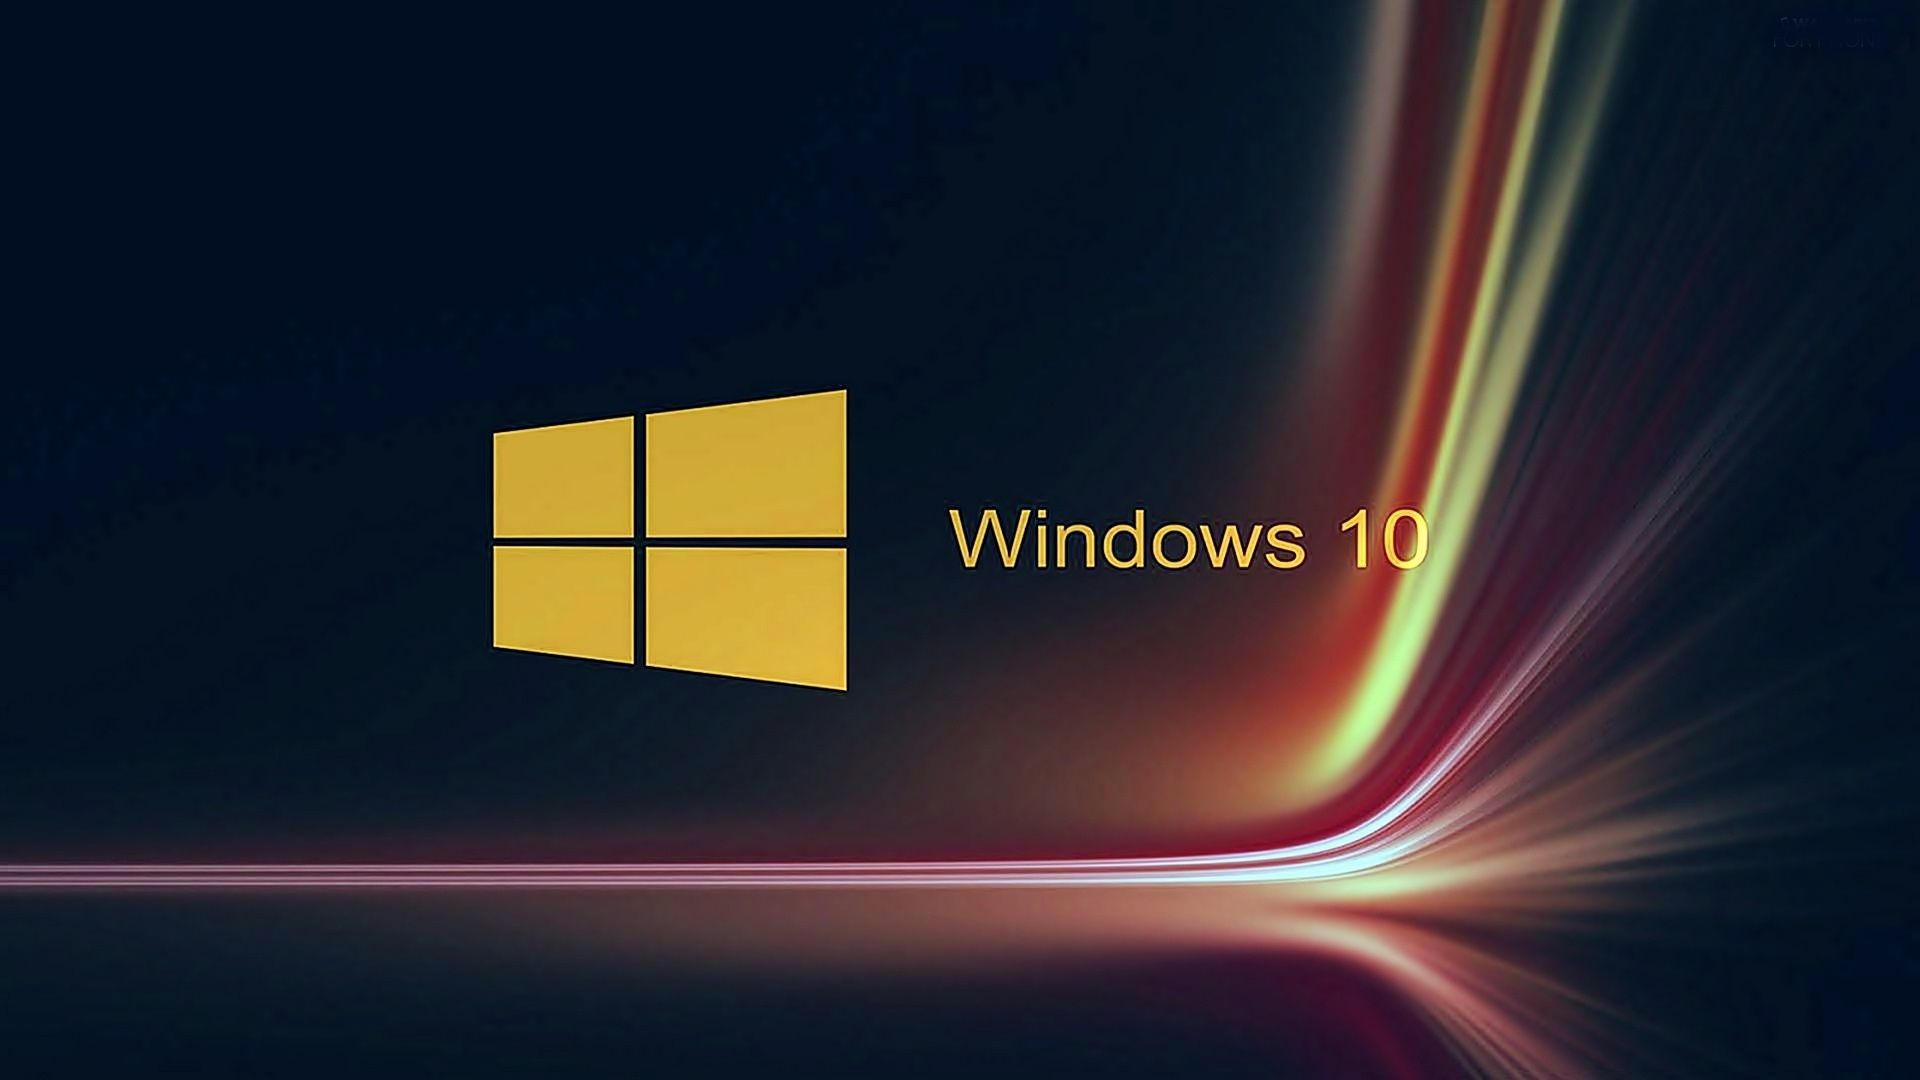 Windows 10 Home Vs Pro For Gaming – Getting the Best Gaming Experience